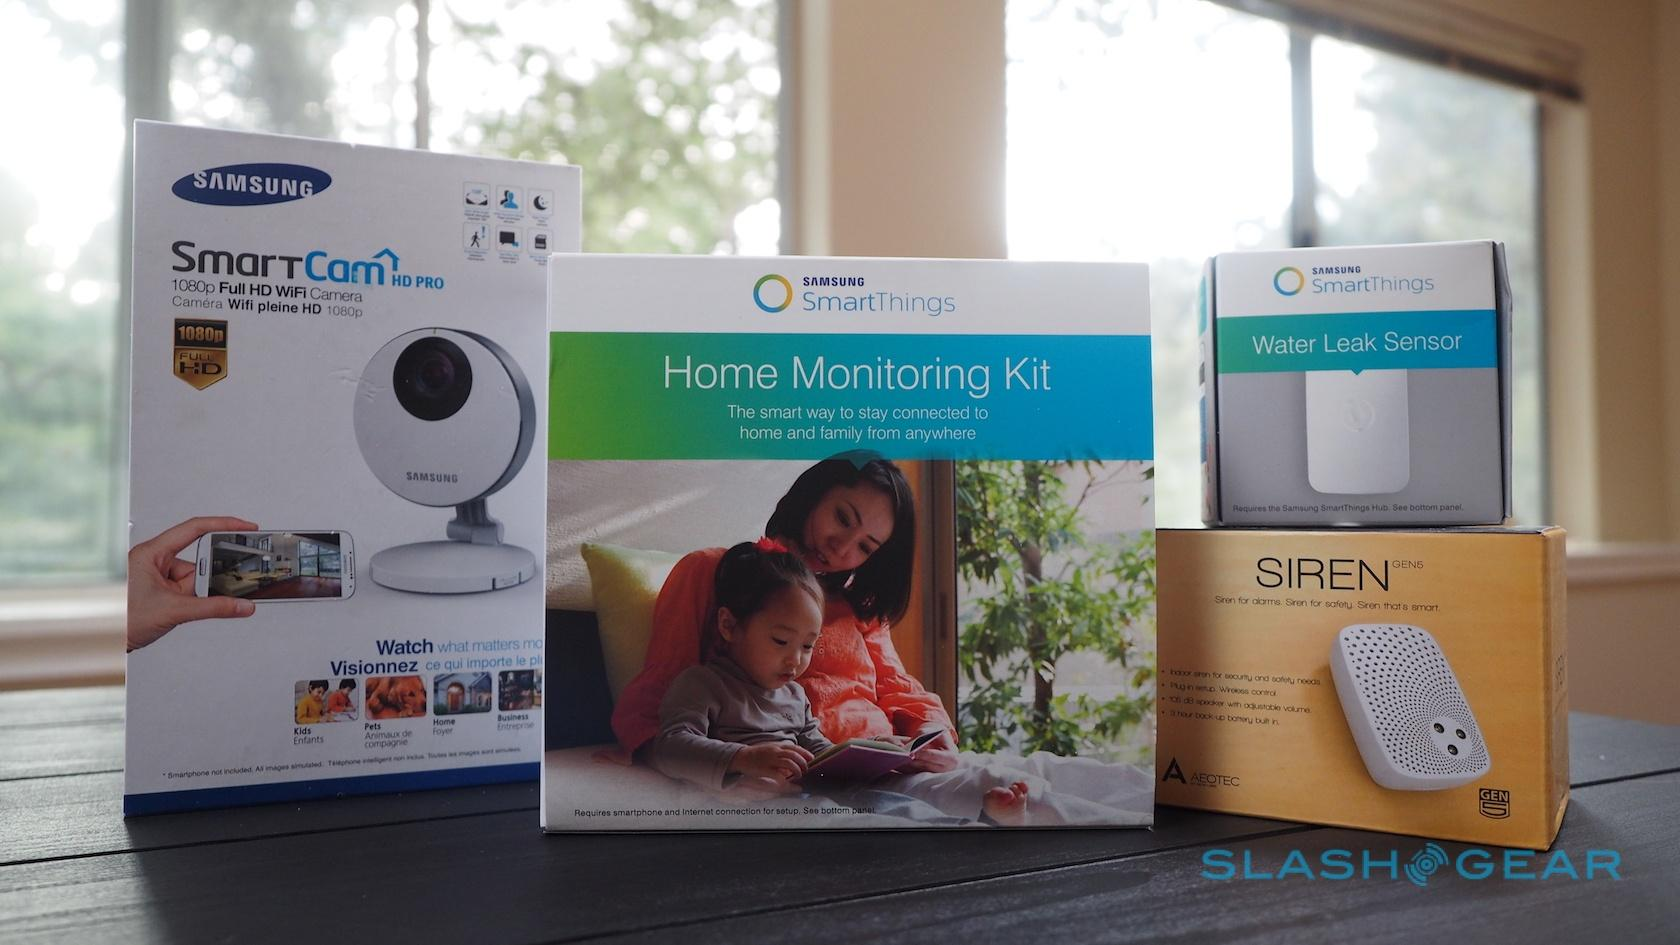 SmartThings 2 0 is here: First-impressions - SlashGear